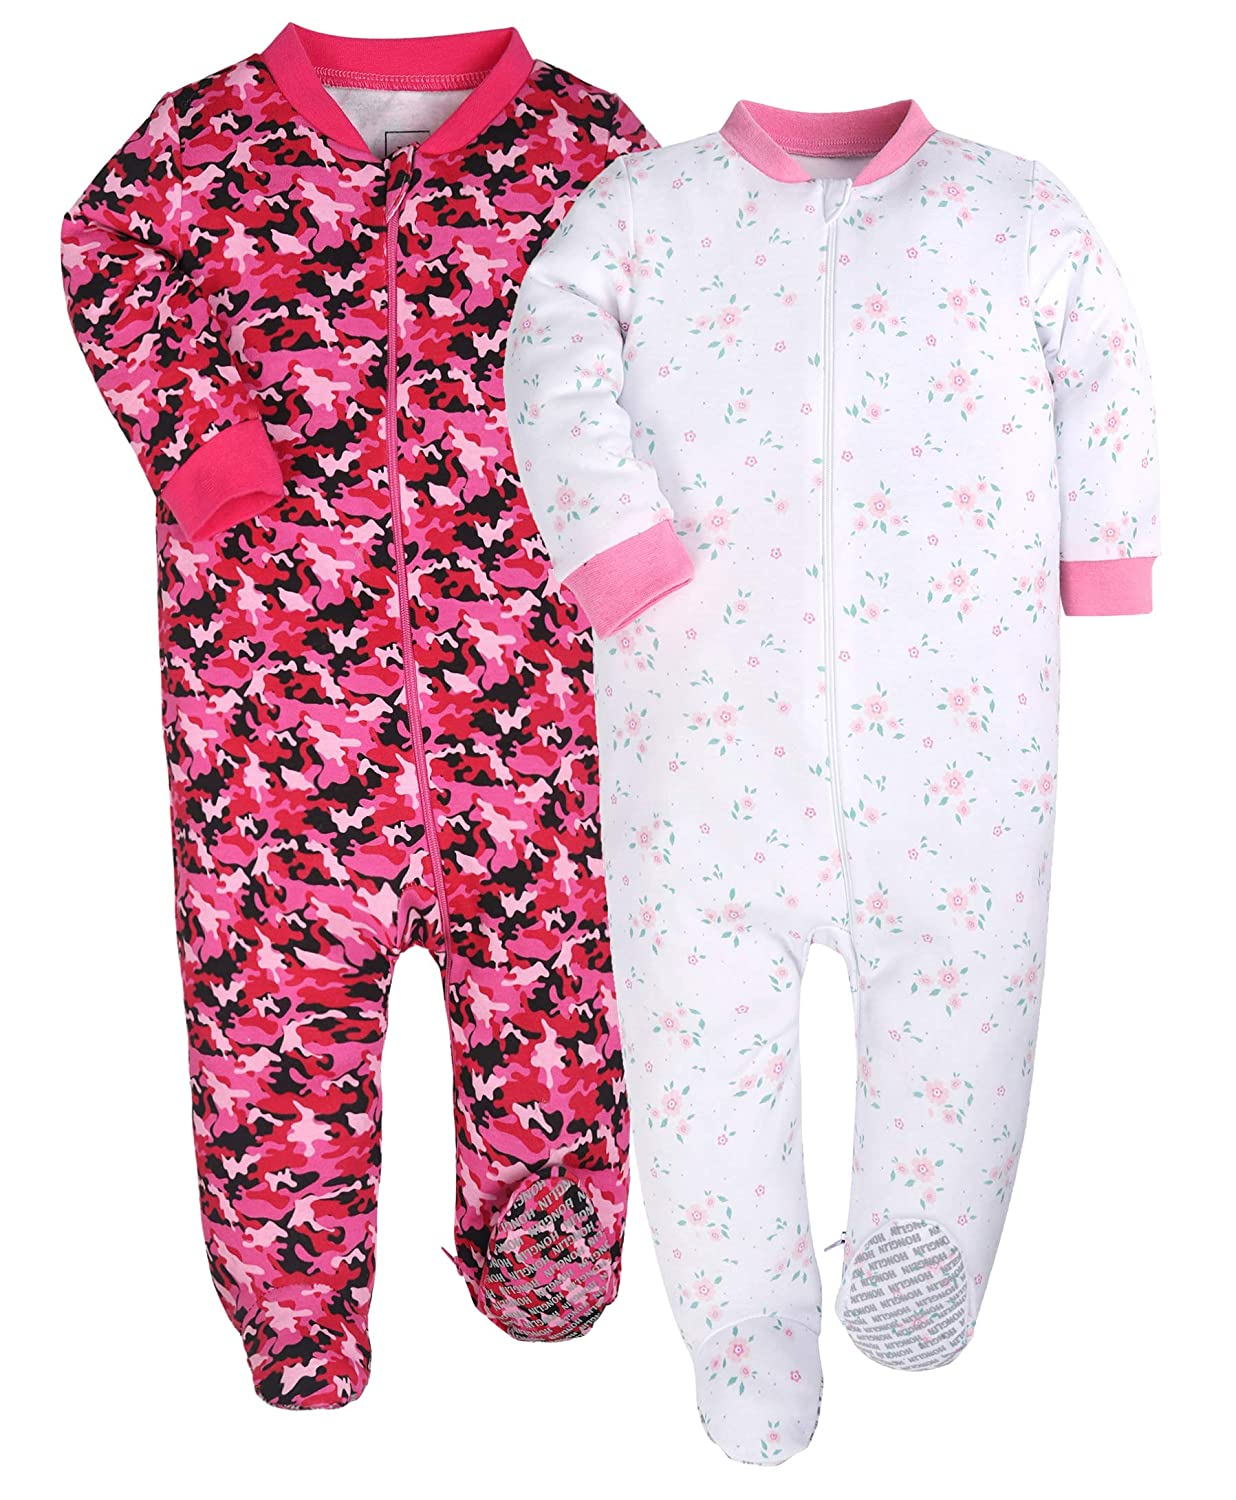 YXD Baby Girls 2-Pack Snug Fit Footed Pajamas 100% Cotton Blanket Sleeper Printing Kitty and Bow Clothes